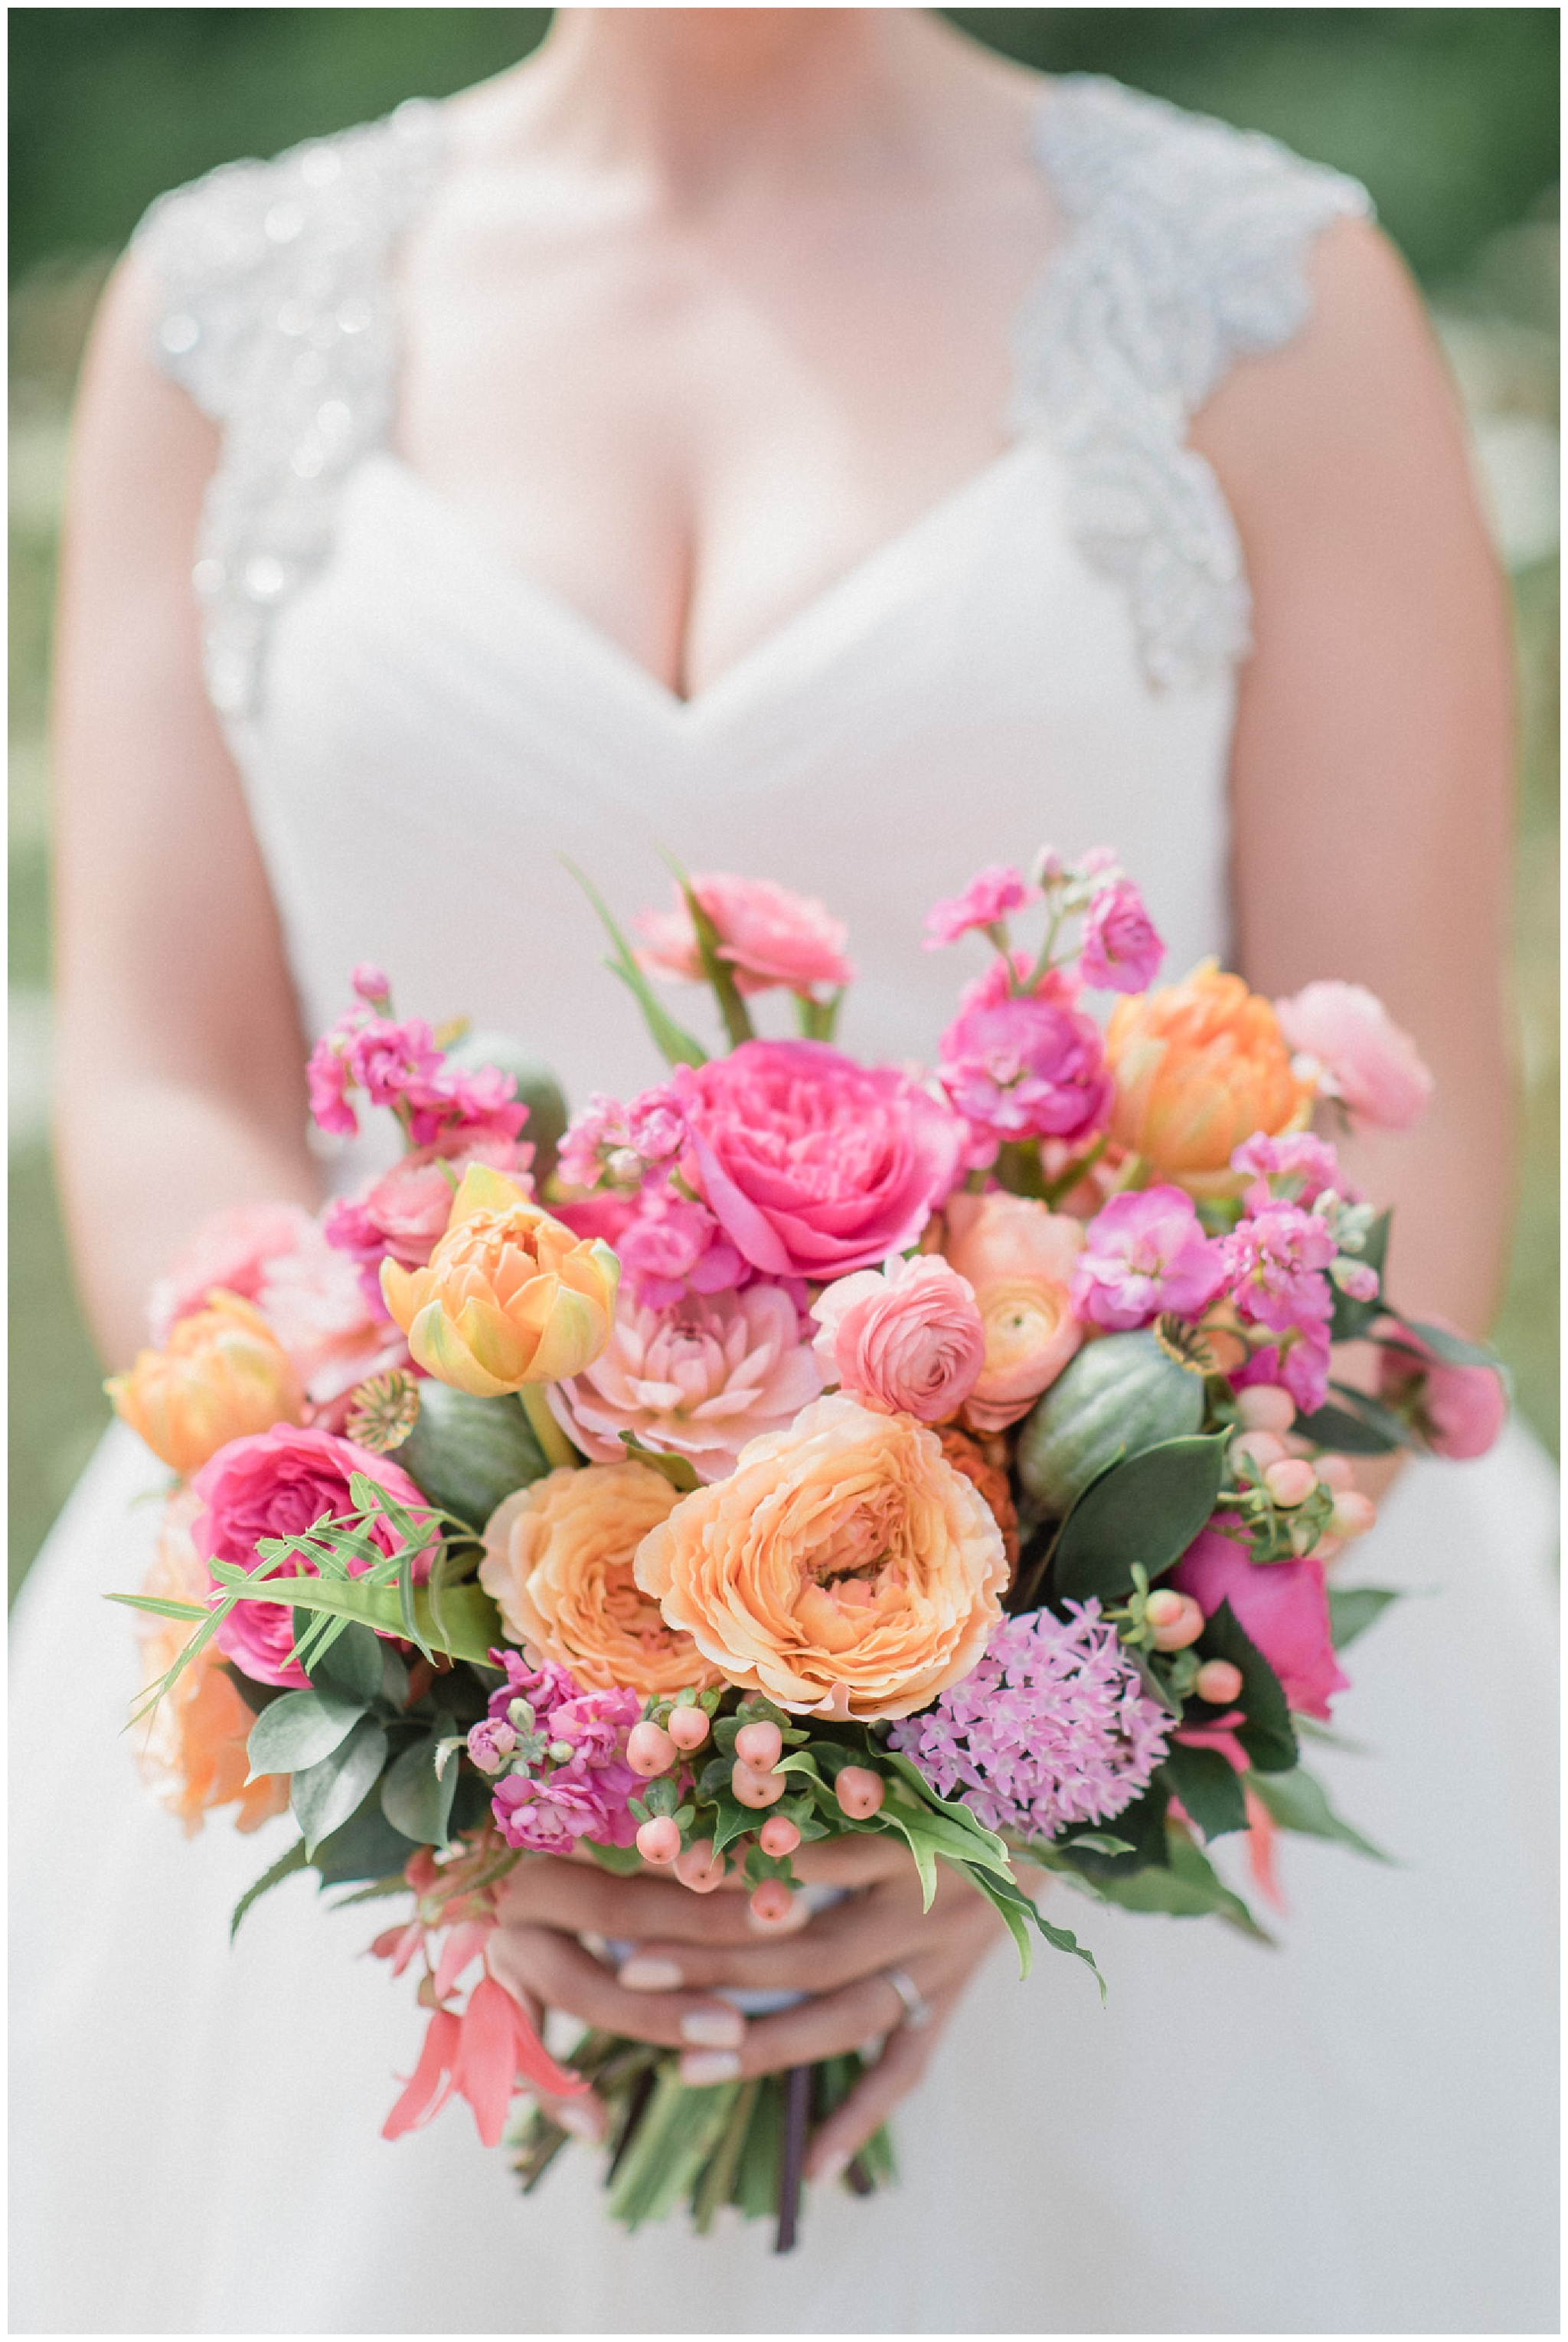 Colourful floral bouquet at Ravine Vineyard Wedding by Jenn Kavanagh Photography